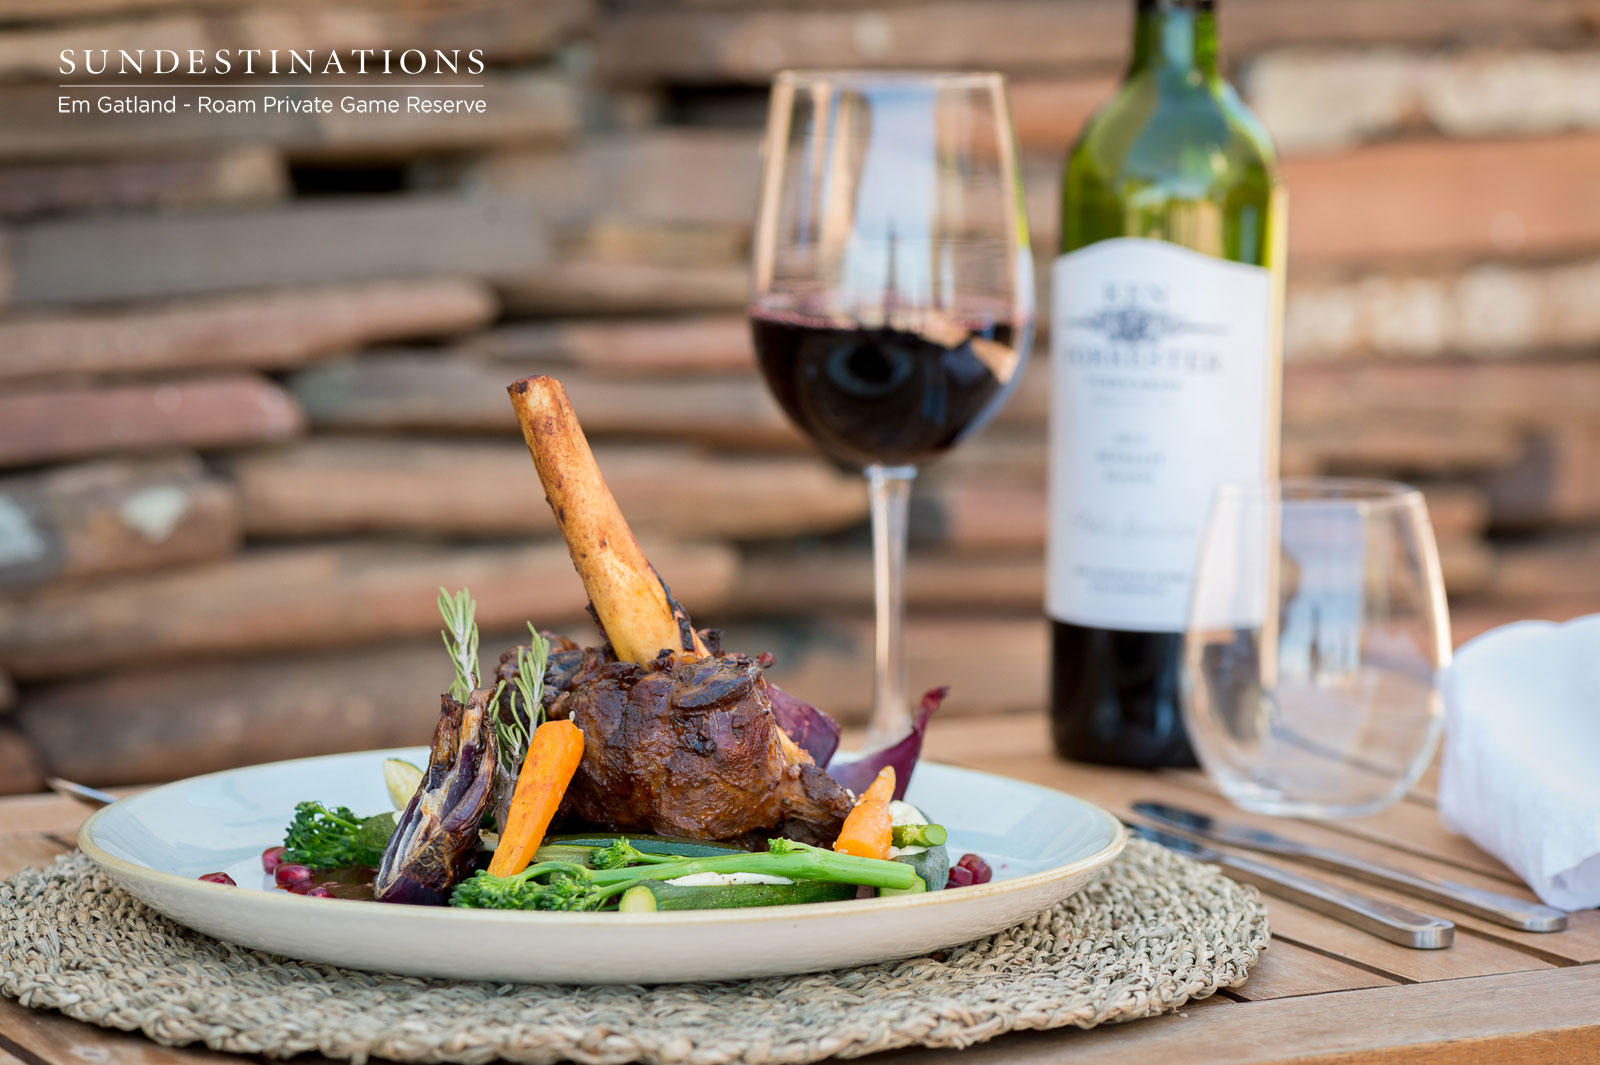 Gourmet Country Fare at Roam Safari Lodge in the Karoo